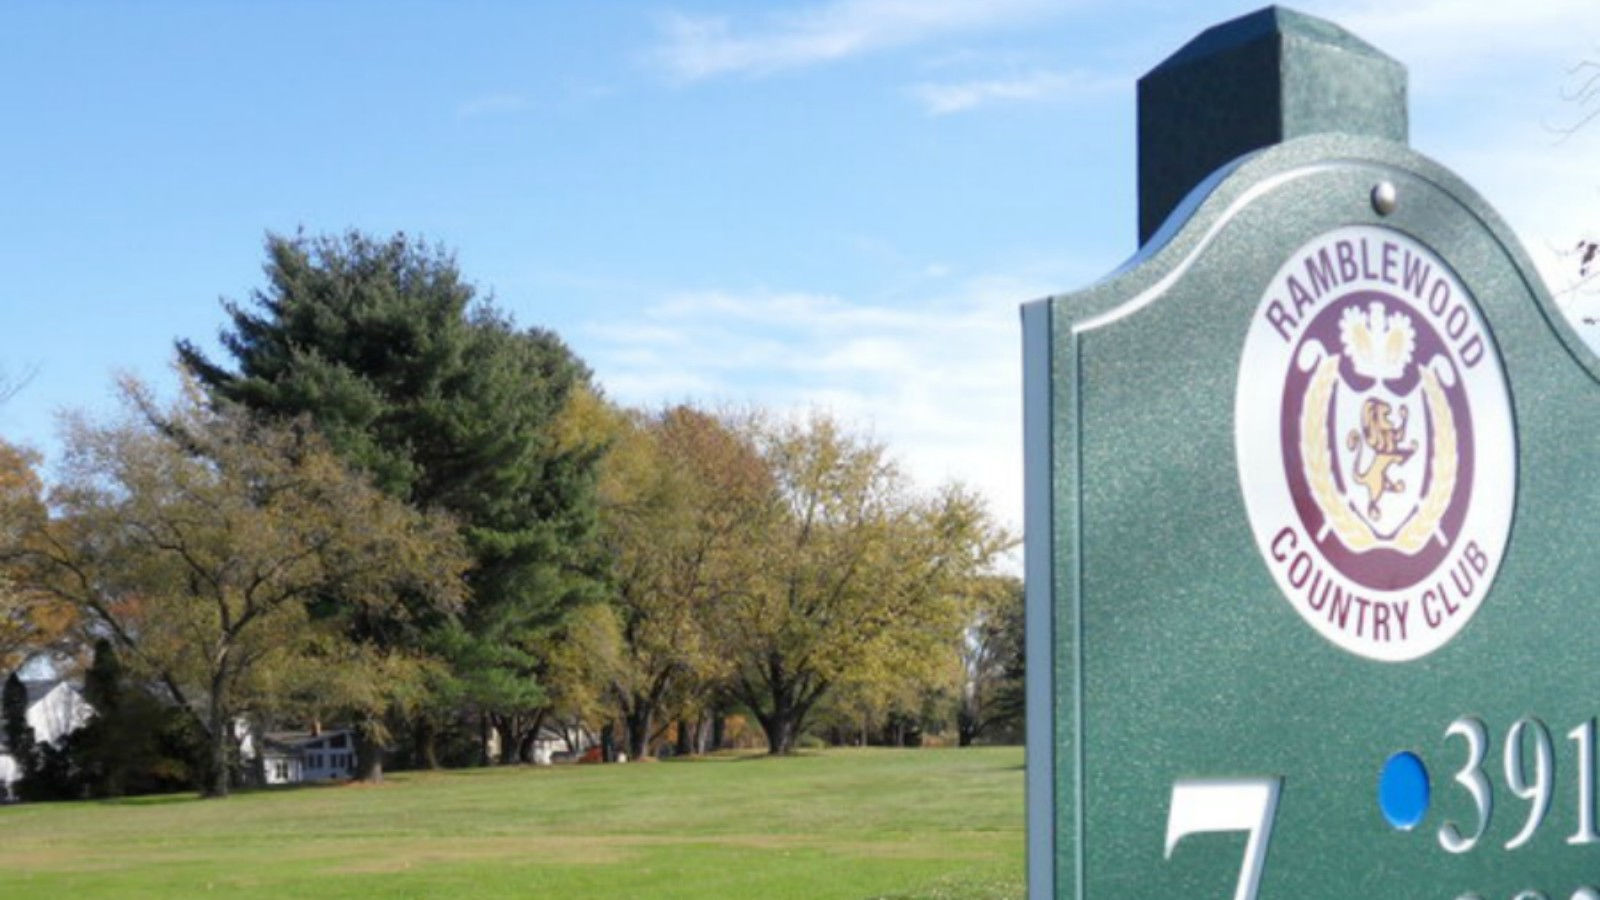 Thigns to do in South Jersey | Ramblewood Country Club